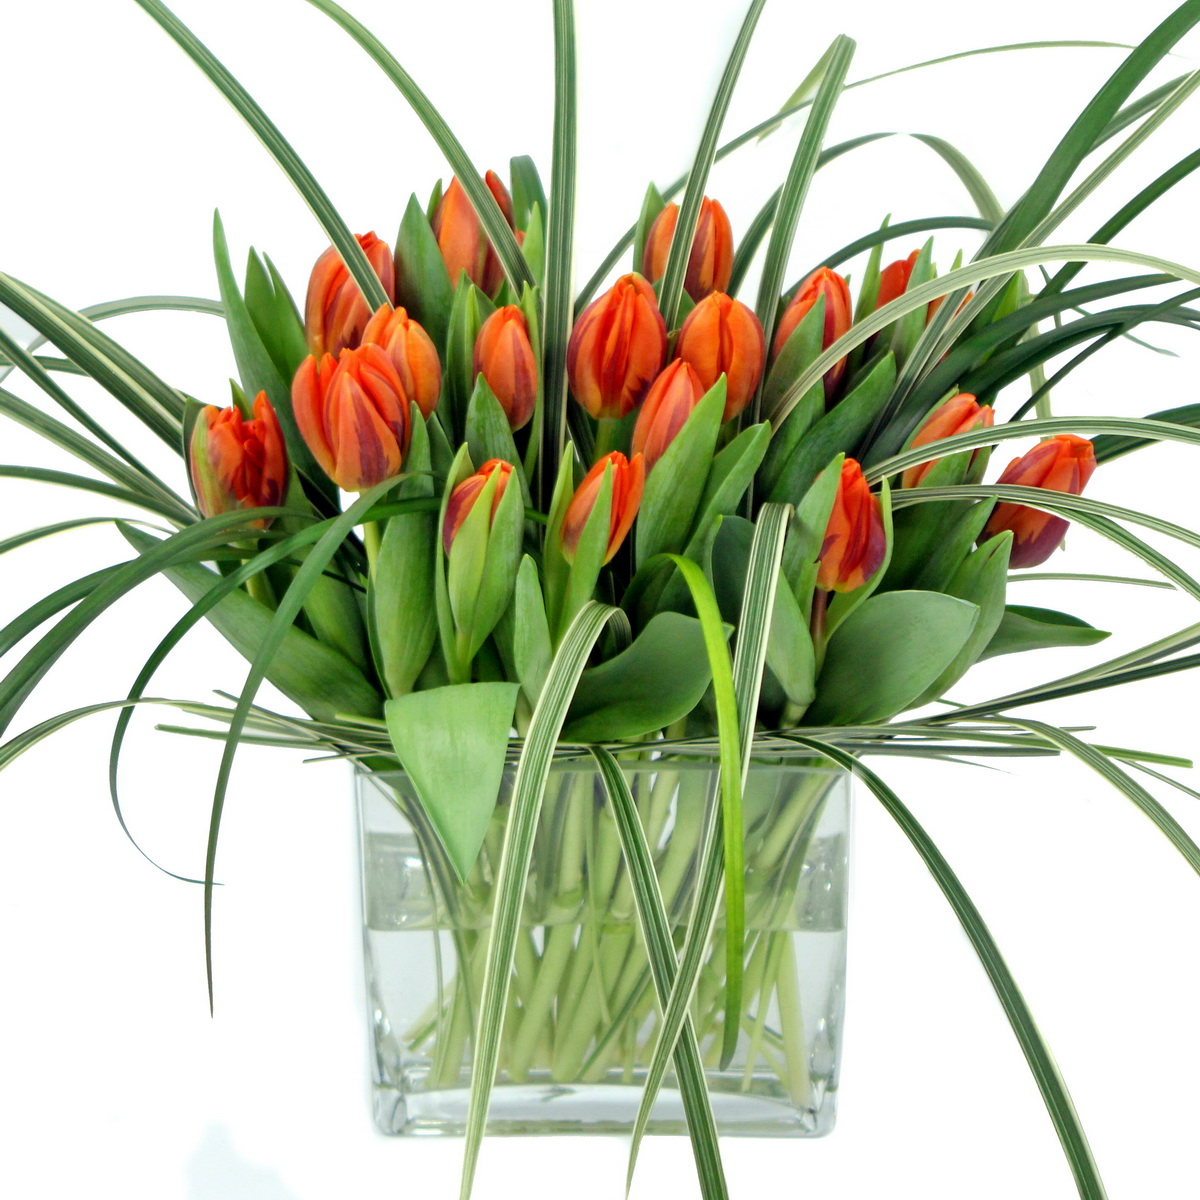 Easter flowers tulips Spring flowers tulips Easter flower decorations tulips Easter bouquets and tulips table centrepieces London florist